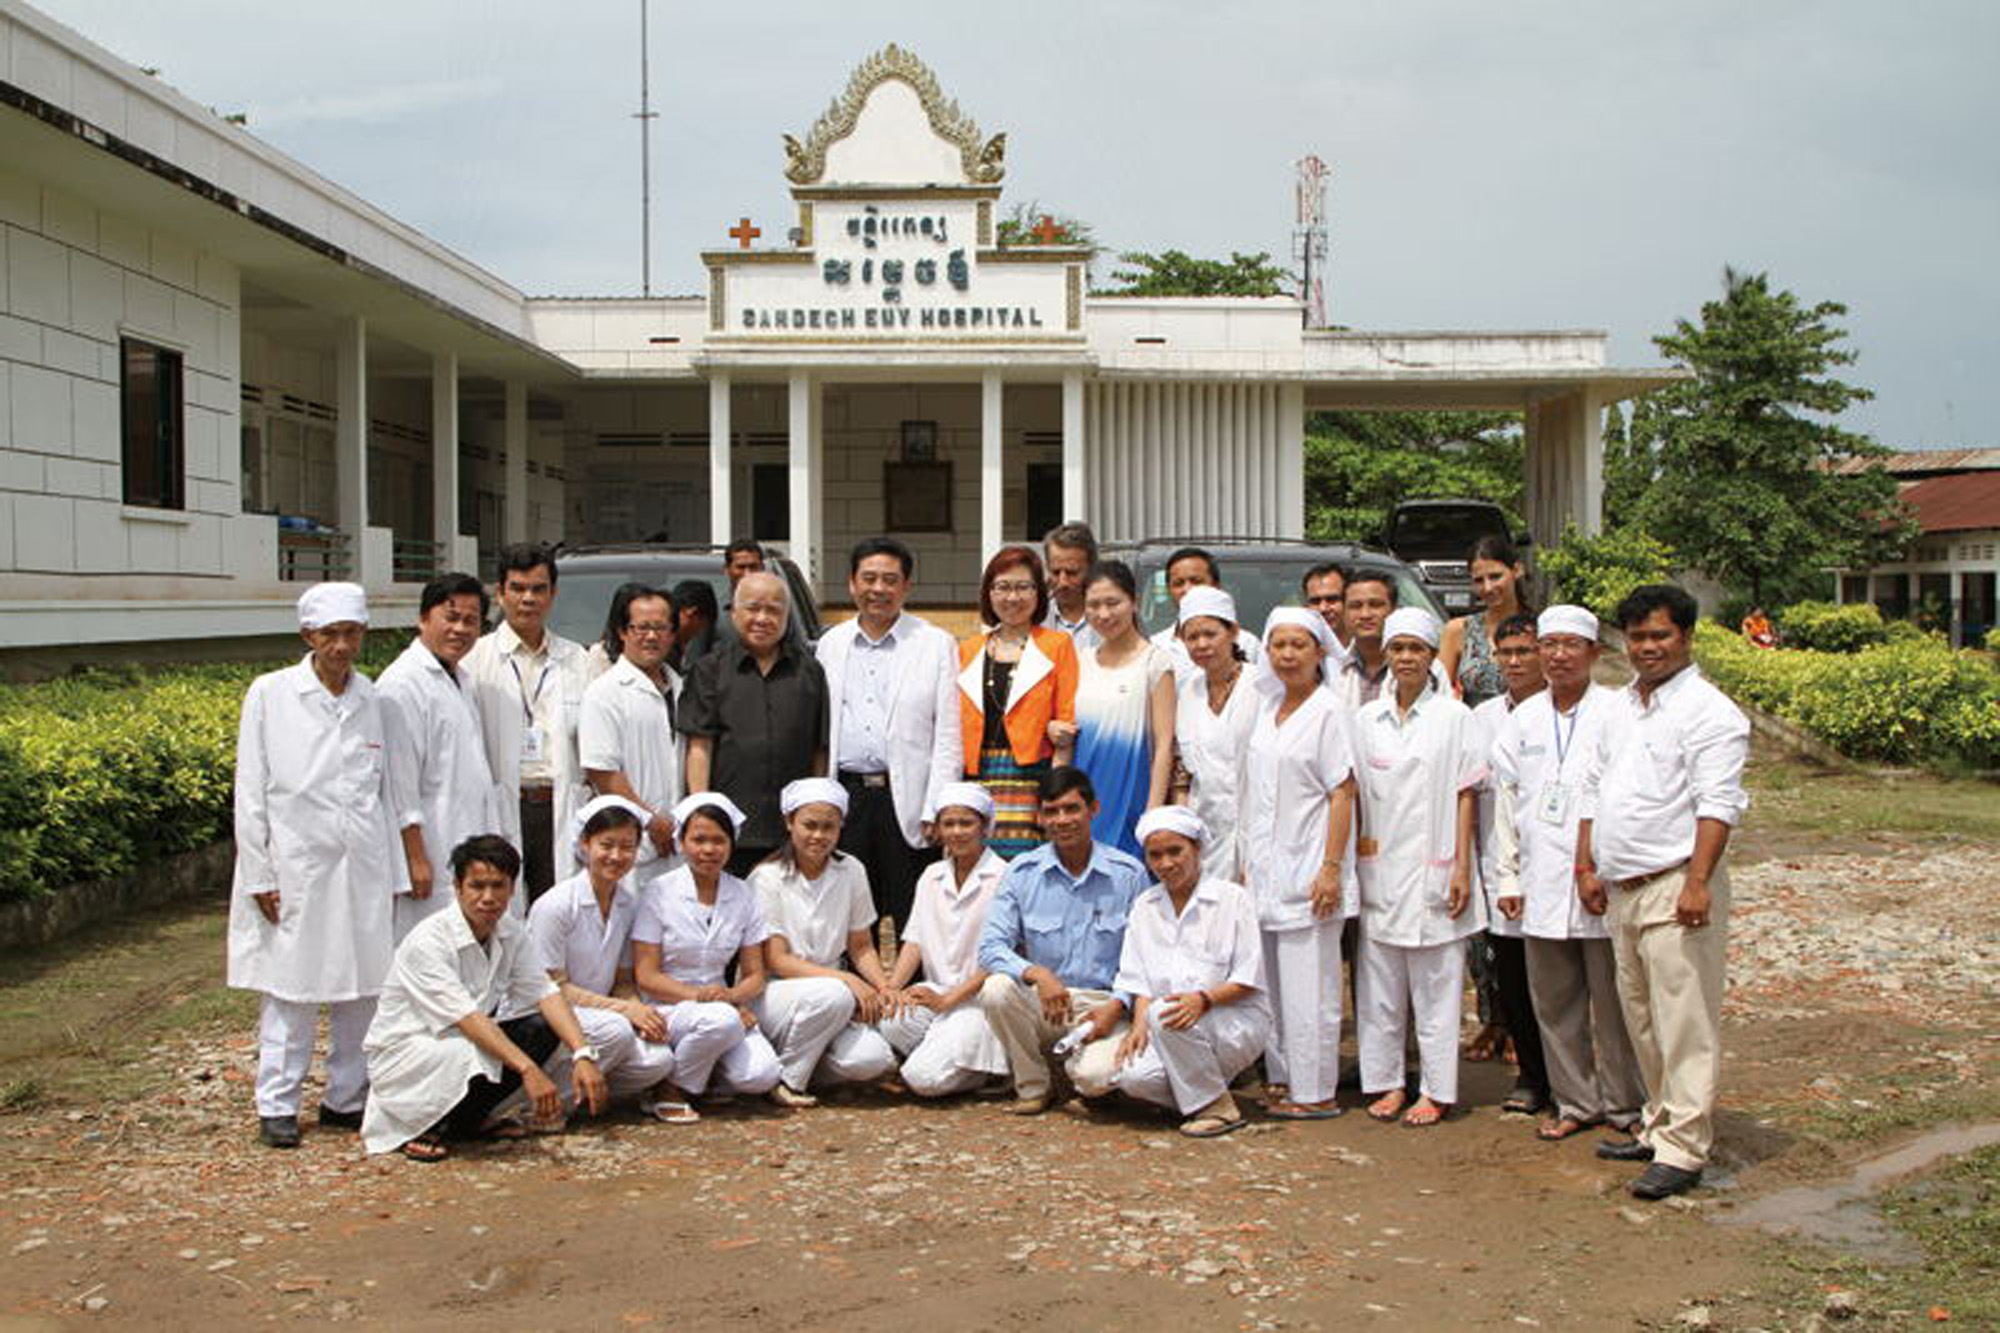 2013, Mr. Junqing Lu and his family visited Cambodia to offer their condolences and make donations to local hospitals